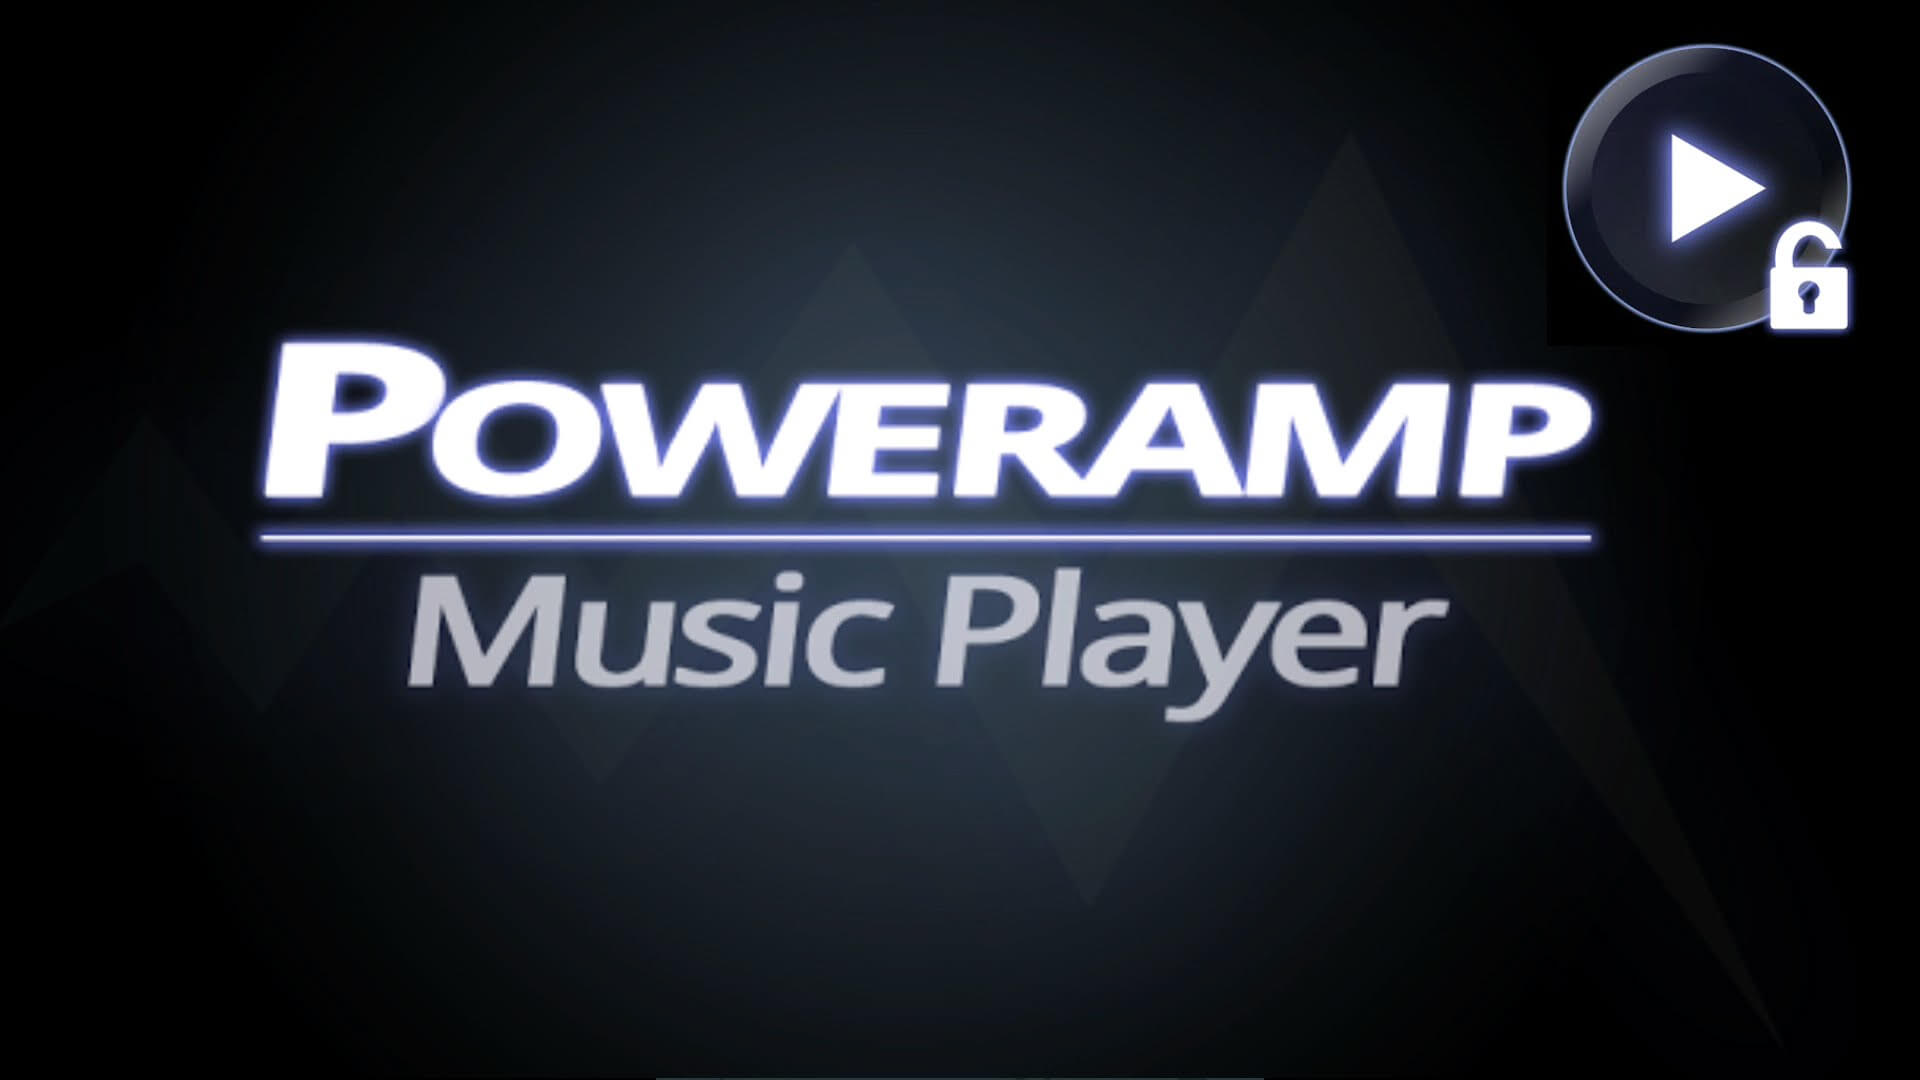 Apk Version Poweramp Full Version Apk Download For Android (#latest